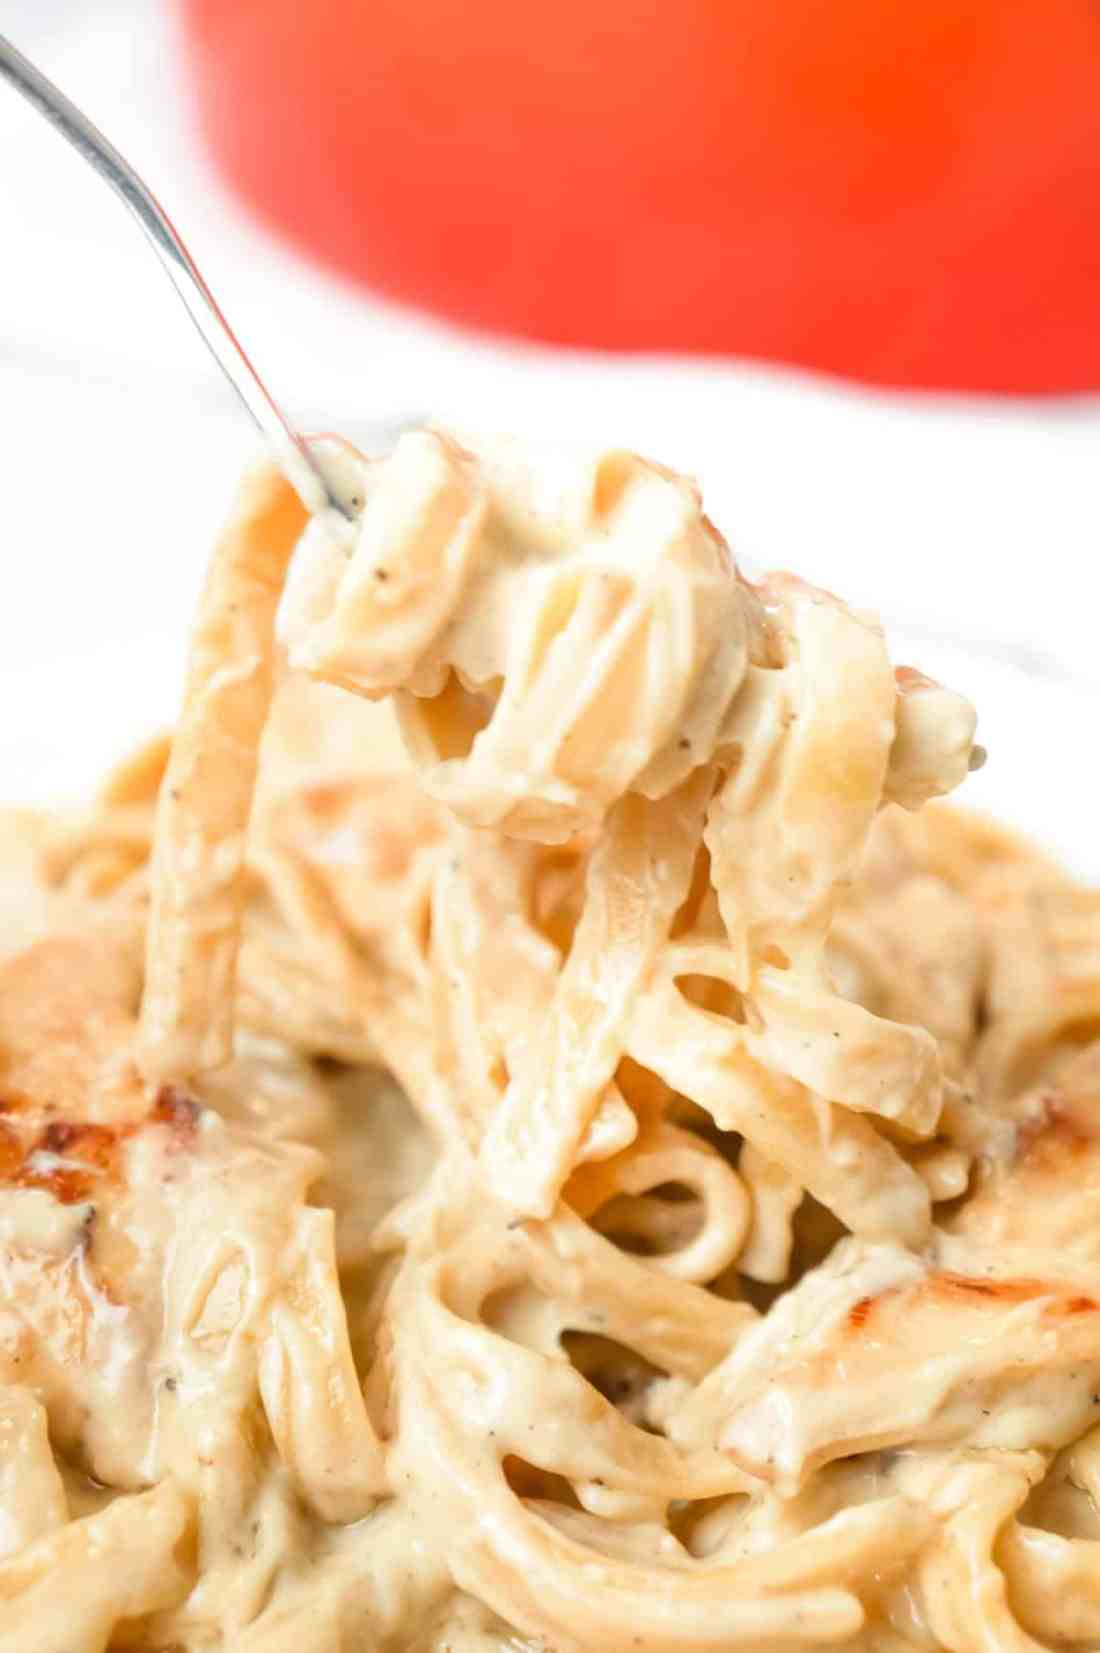 One Pot Fettuccine Alfredo with Chicken is an easy and delicious pasta recipe with a creamy garlic Parmesan sauce and loaded with slices of chicken breast.